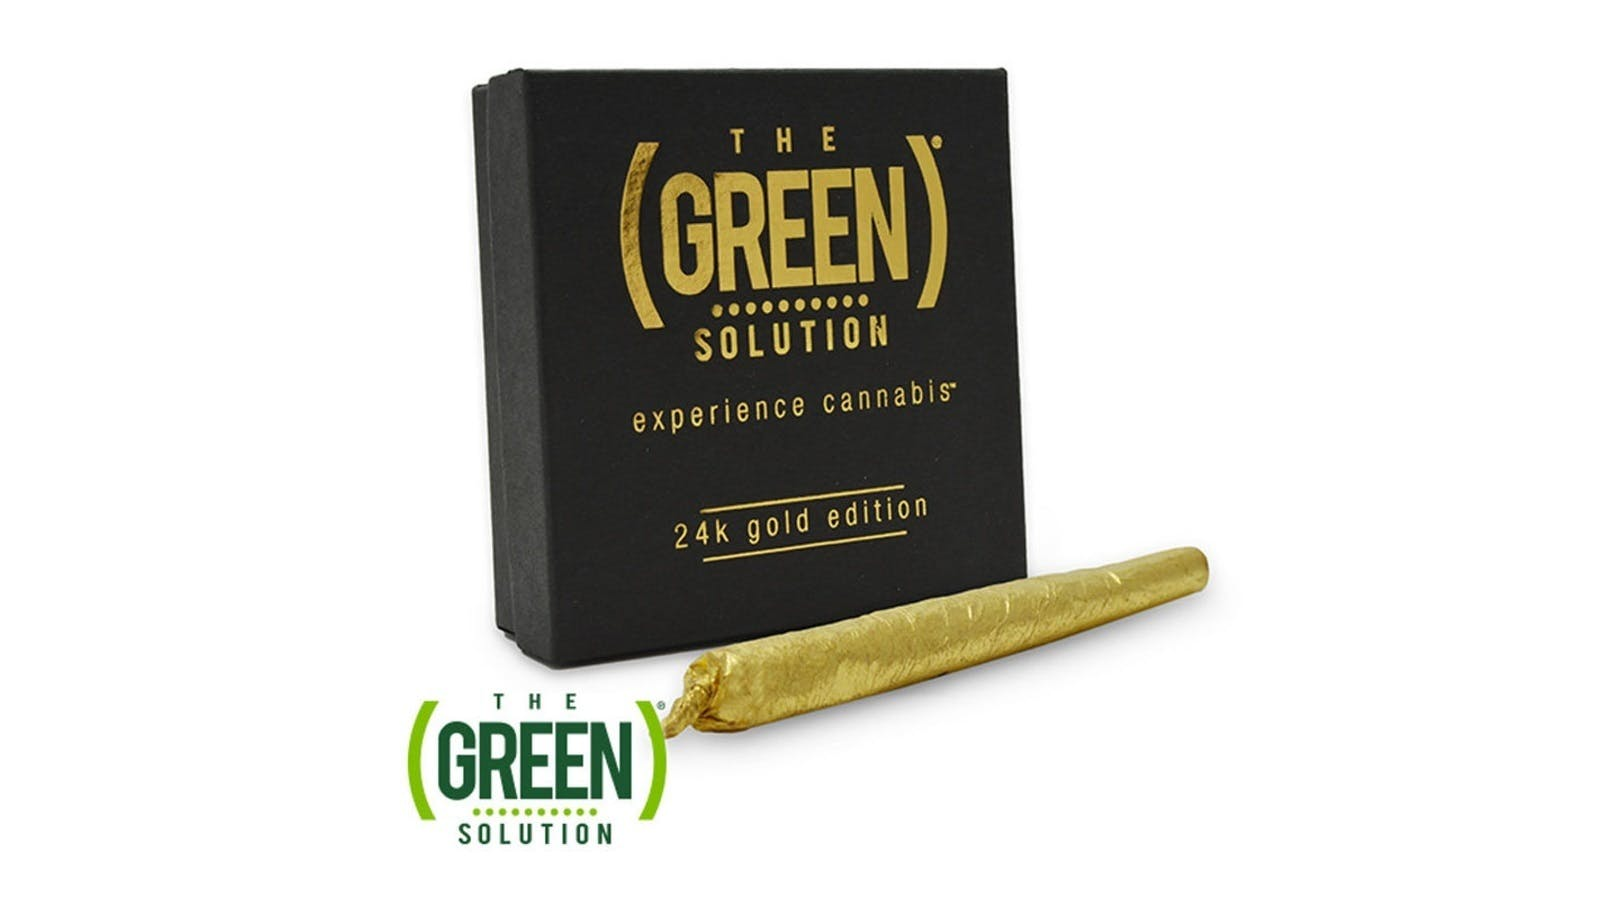 marijuana-dispensaries-the-green-solution-union-station-in-denver-24k-gold-cone